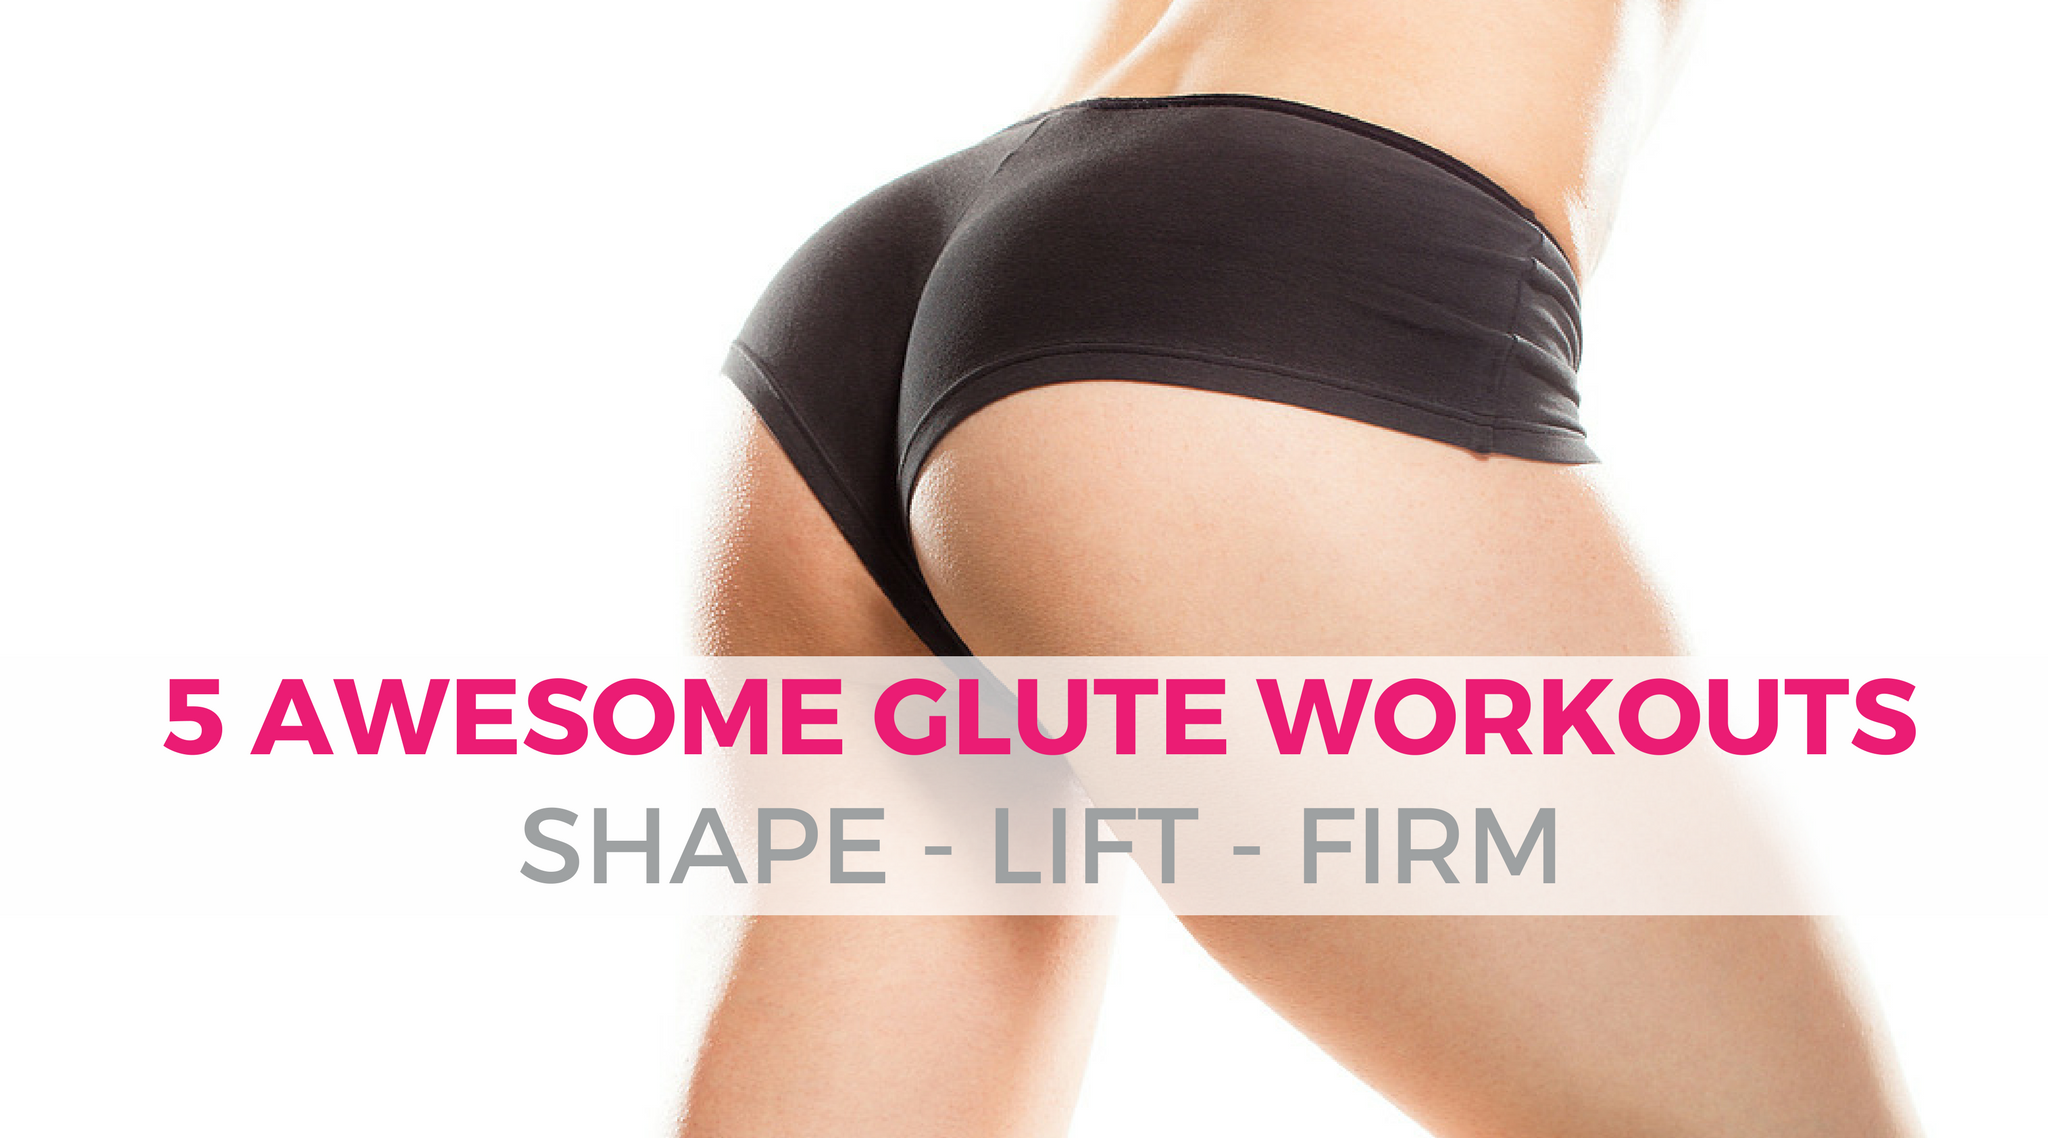 How to Get Your Best Booty: 5 Awesome At Home Exercises for Women